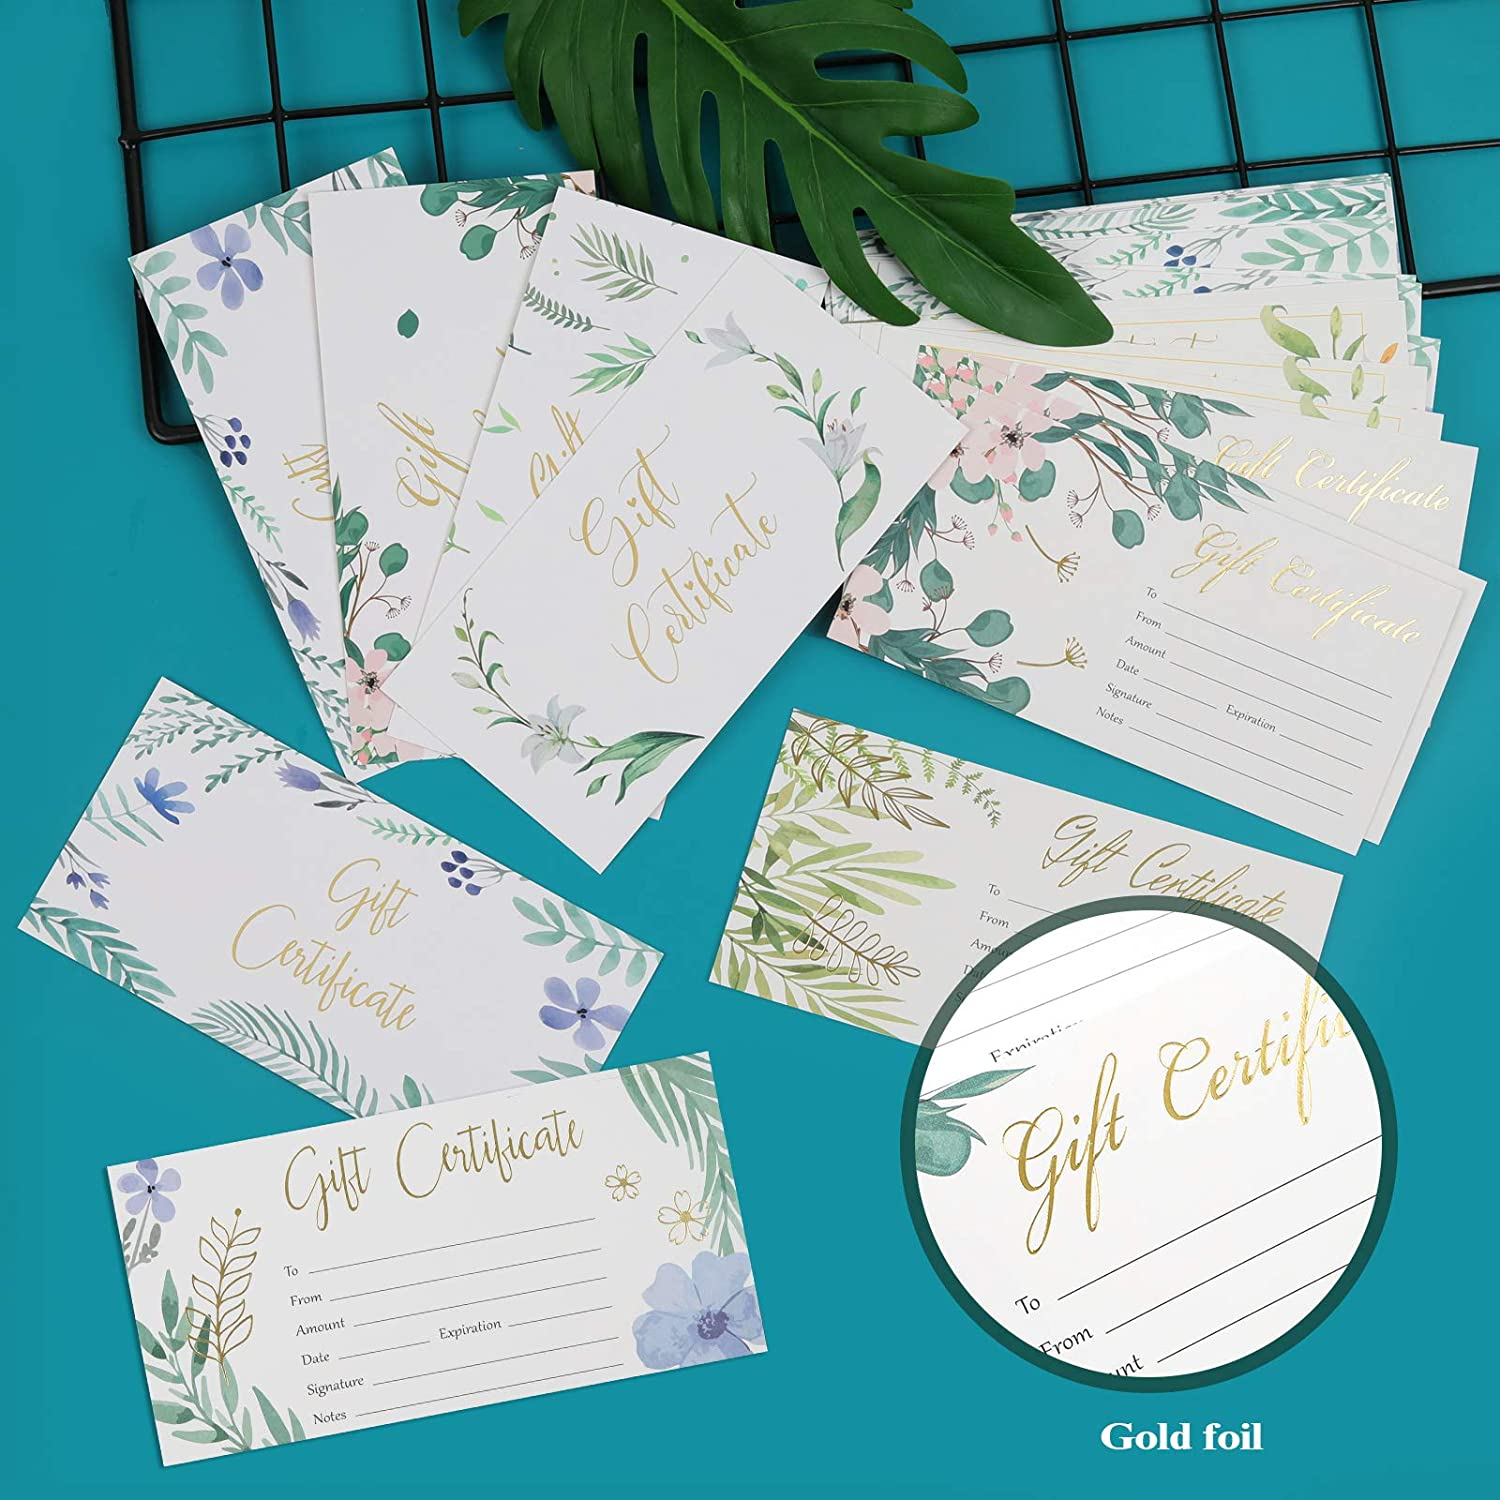 48 Pieces Gold Foil Blank Gift Certificates for Small Business Spa ...